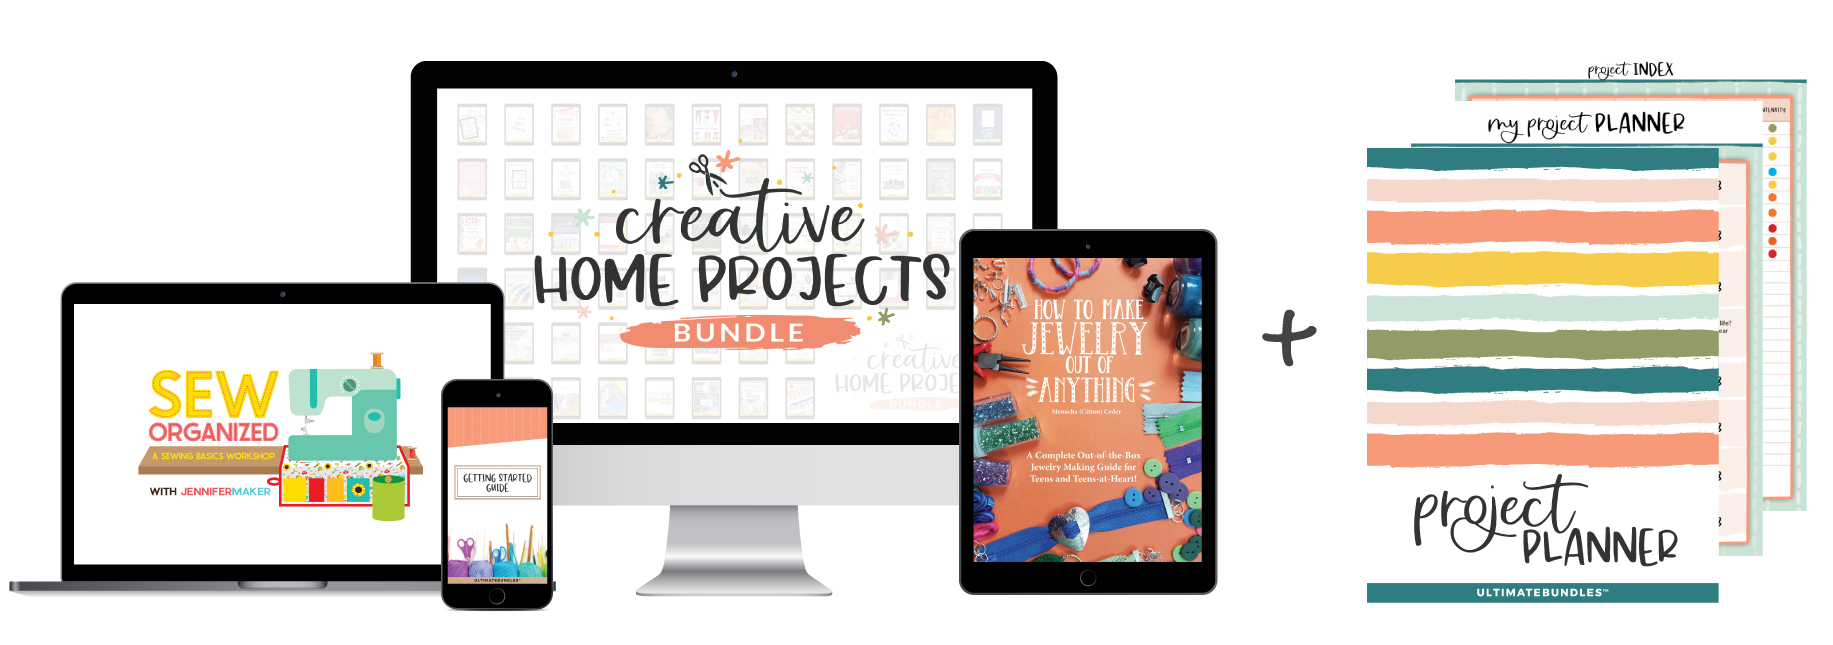 Creative Home Projects Bundle 2020